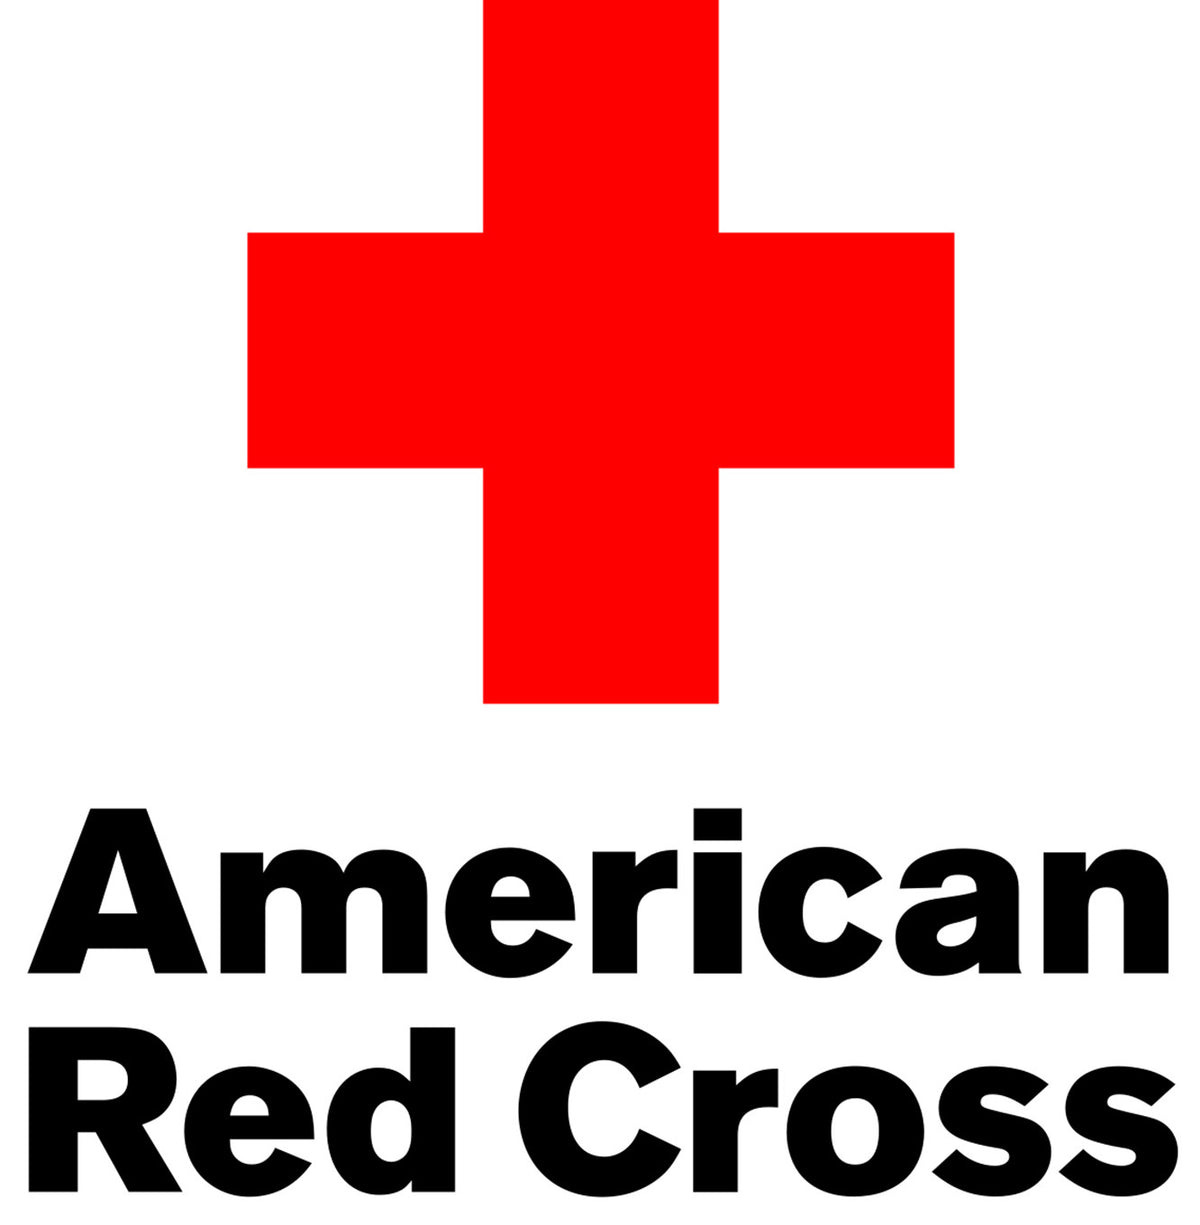 Donate $1 to American Red Cross